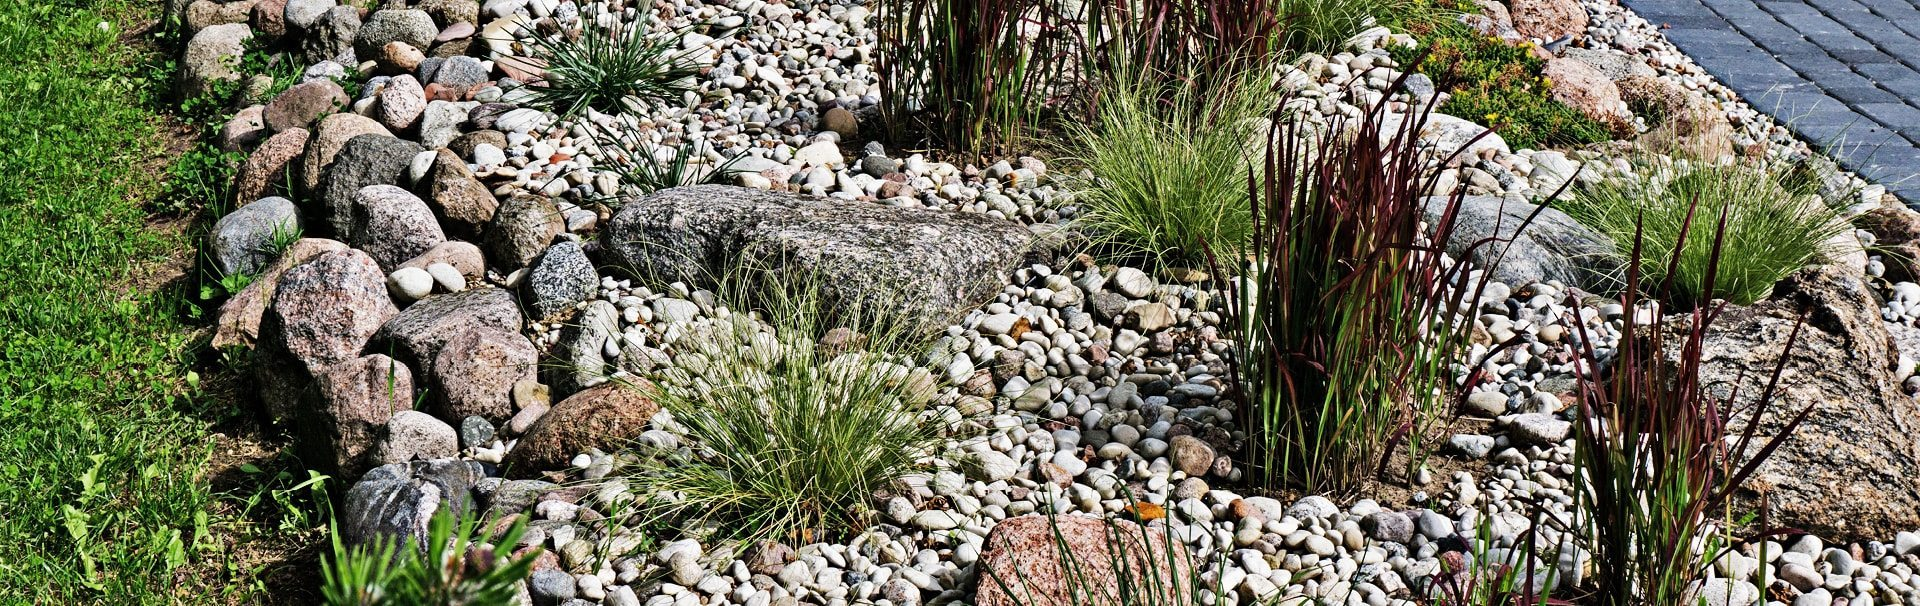 stone landscaping pebbles